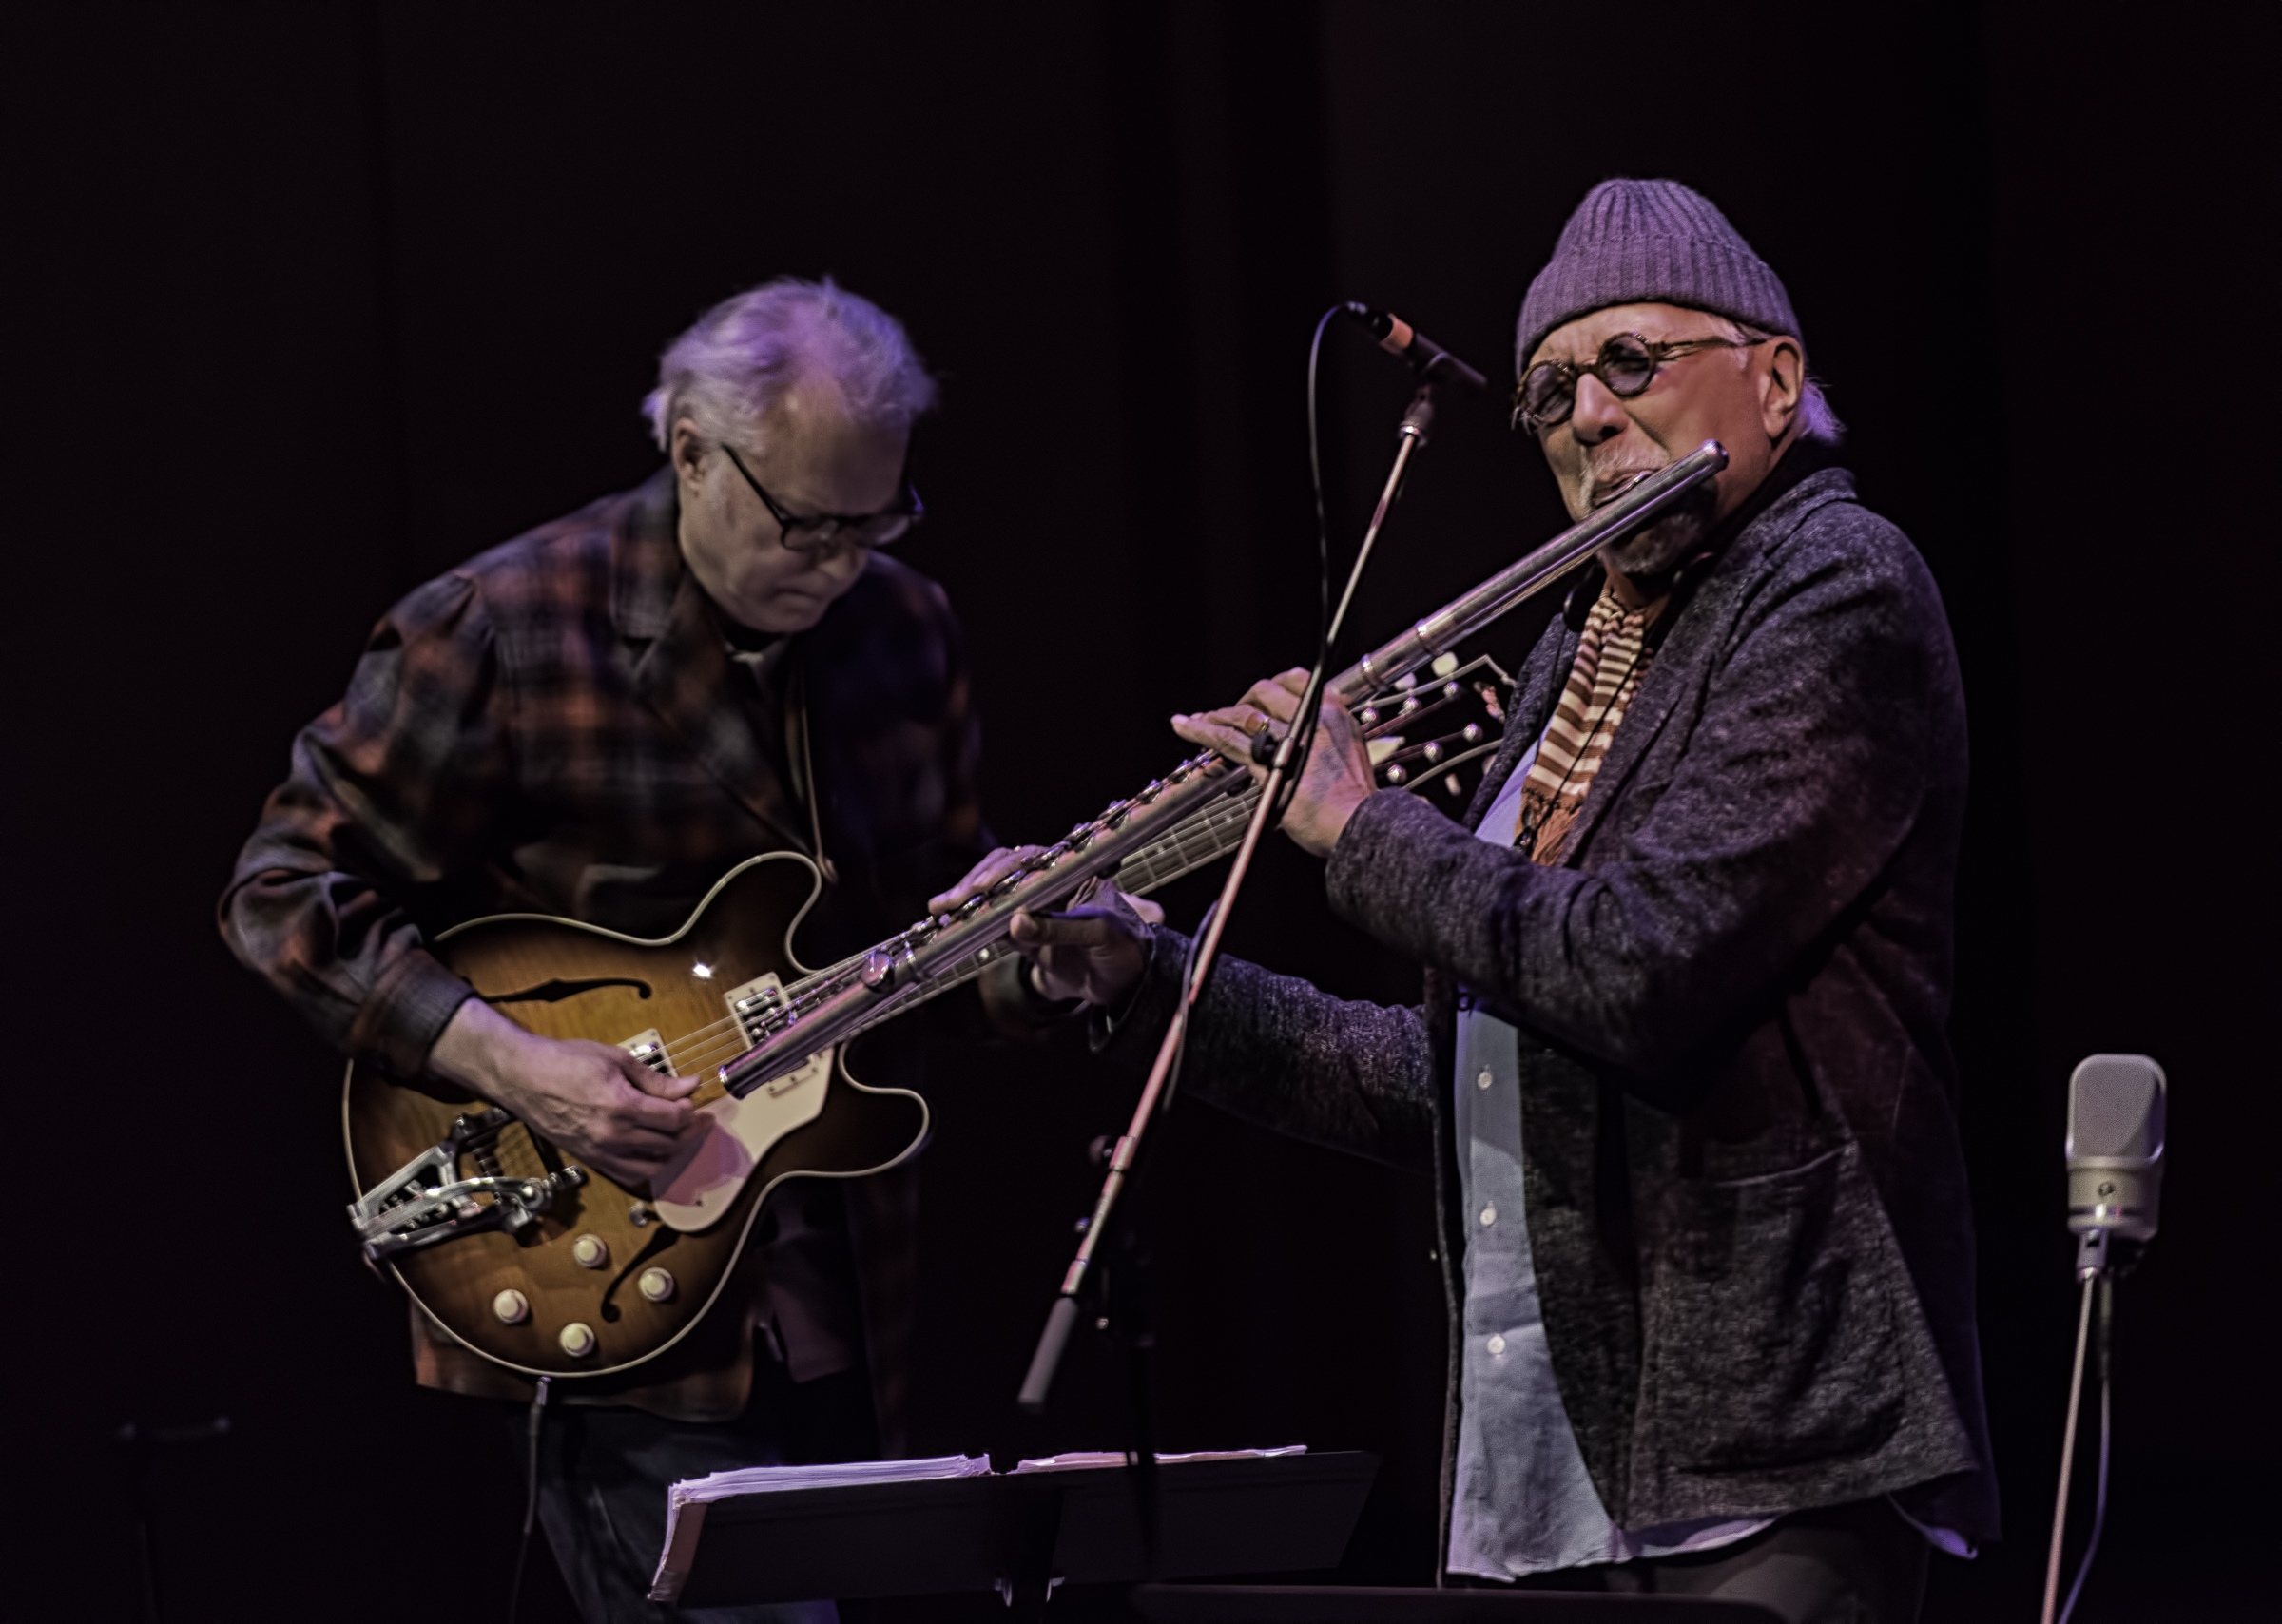 Bill Frisell and Charles Lloyd with Quartet at the Musical Instrument Museum (MIM) Phoenix